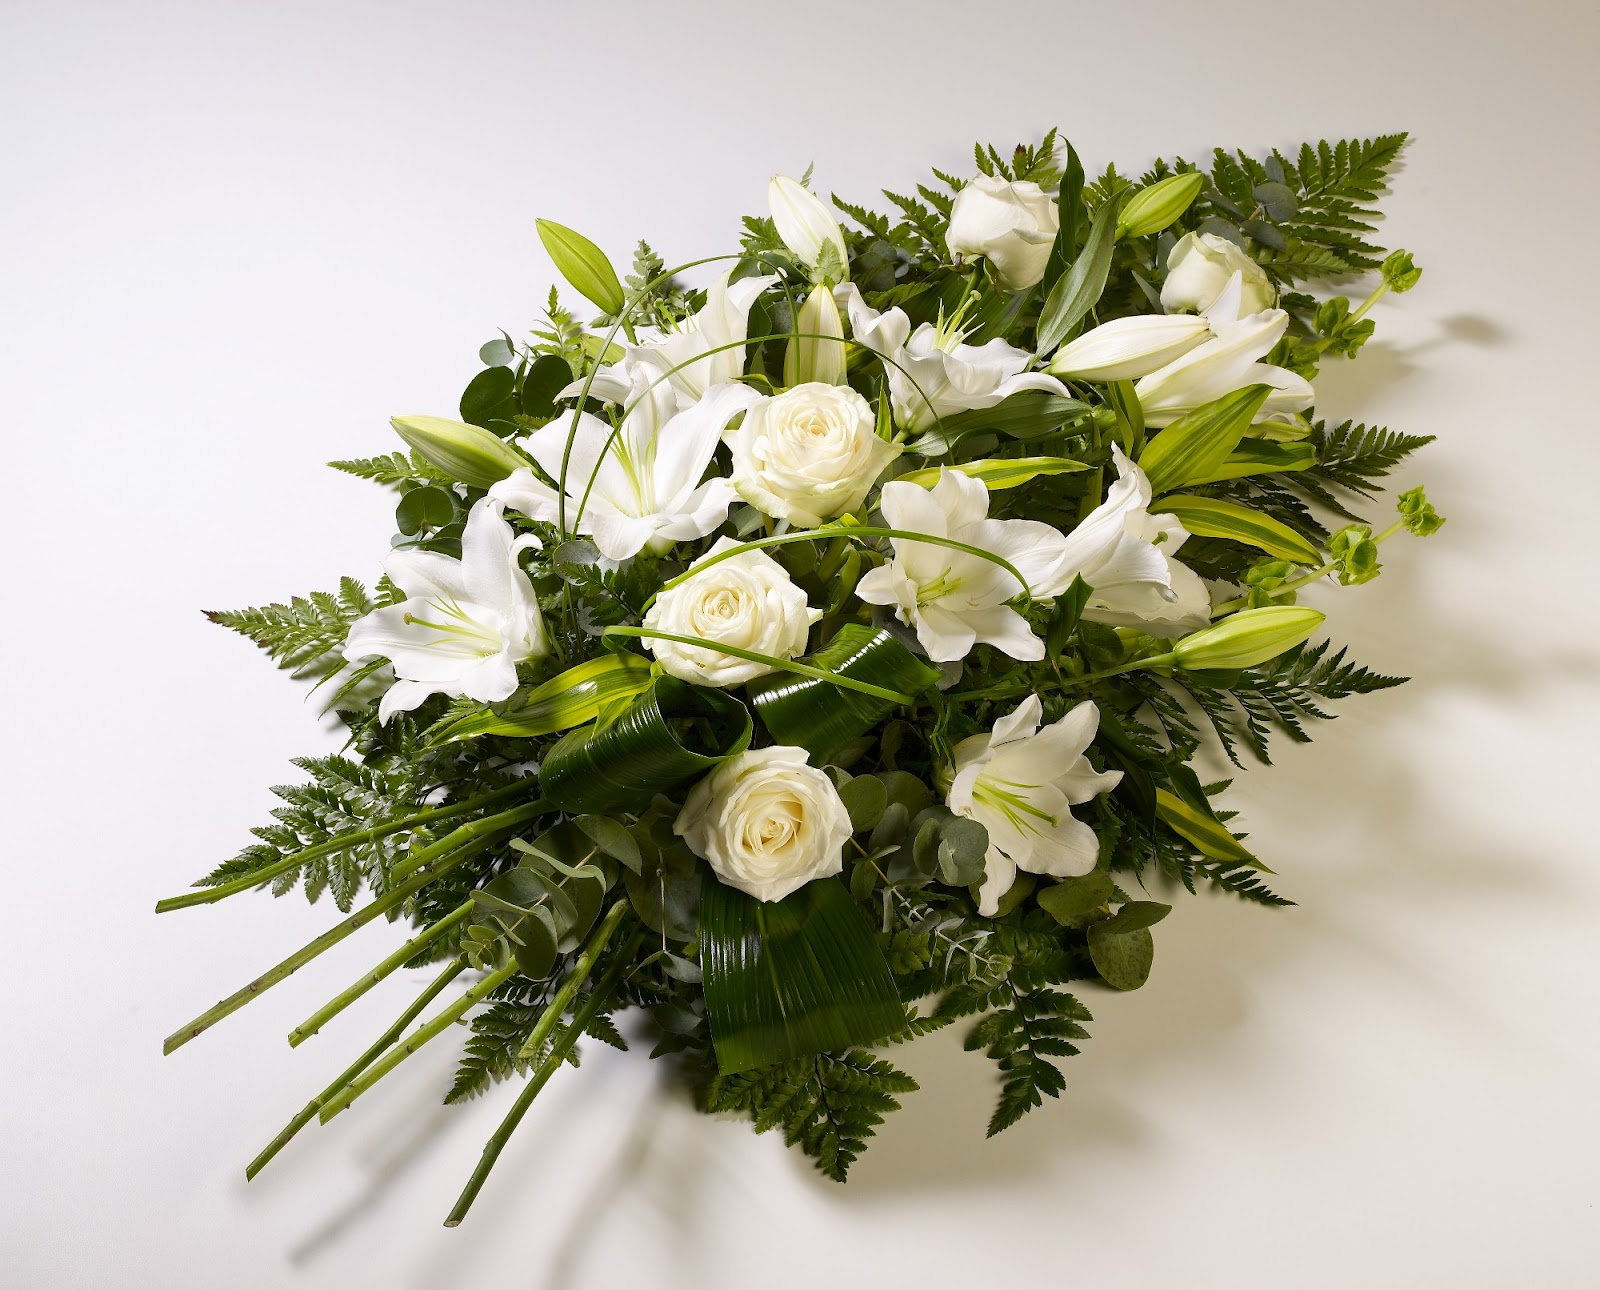 white tied sheaf funeral tribute.jpg